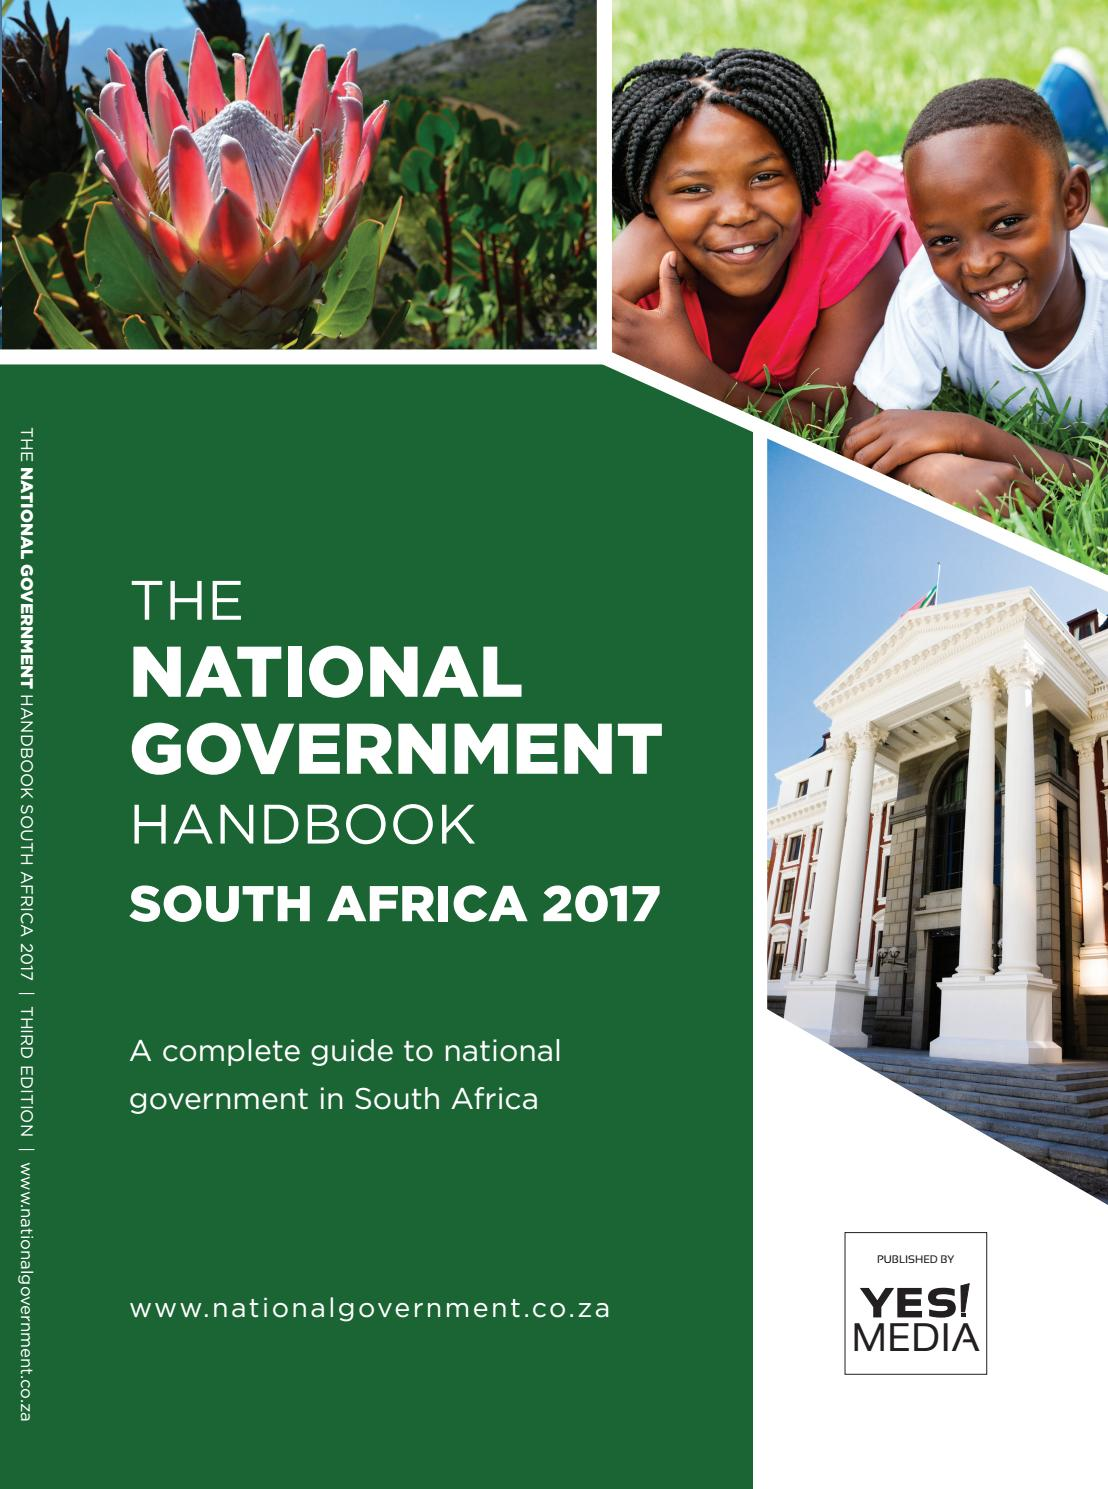 National Government Handbook  South Africa 2017 by Yes Media  Issuu